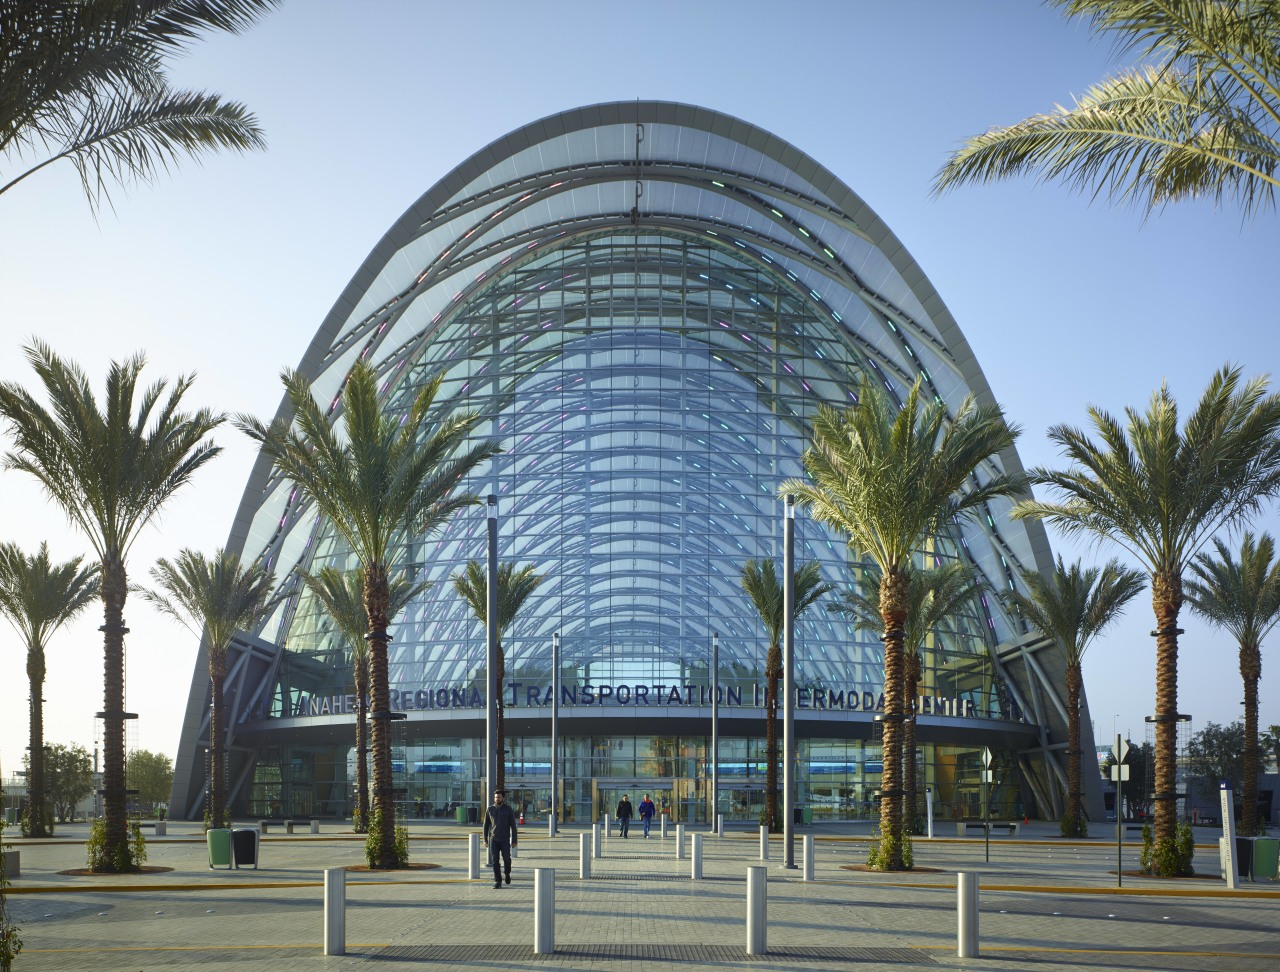 The new ARTIC transit hub in Anaheim is architecture, arecales, building, city, condominium, corporate headquarters, hotel, metropolitan area, mixed use, palm tree, plant, sky, tree, teal